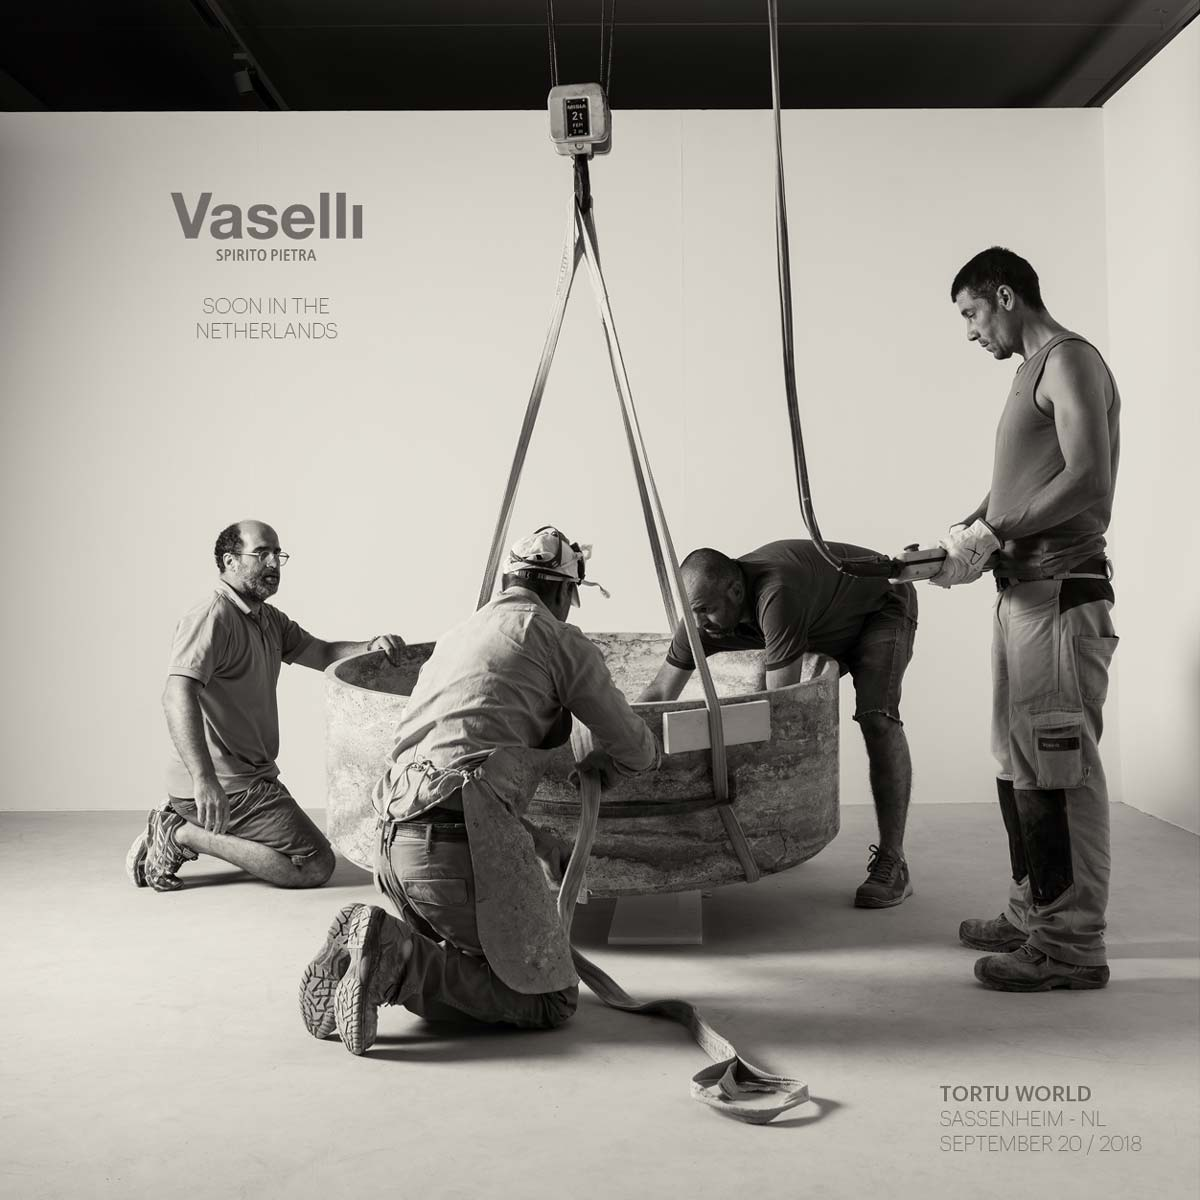 vaselli in olanda - vaselli in the netherlands | Tortu World Grand opneing